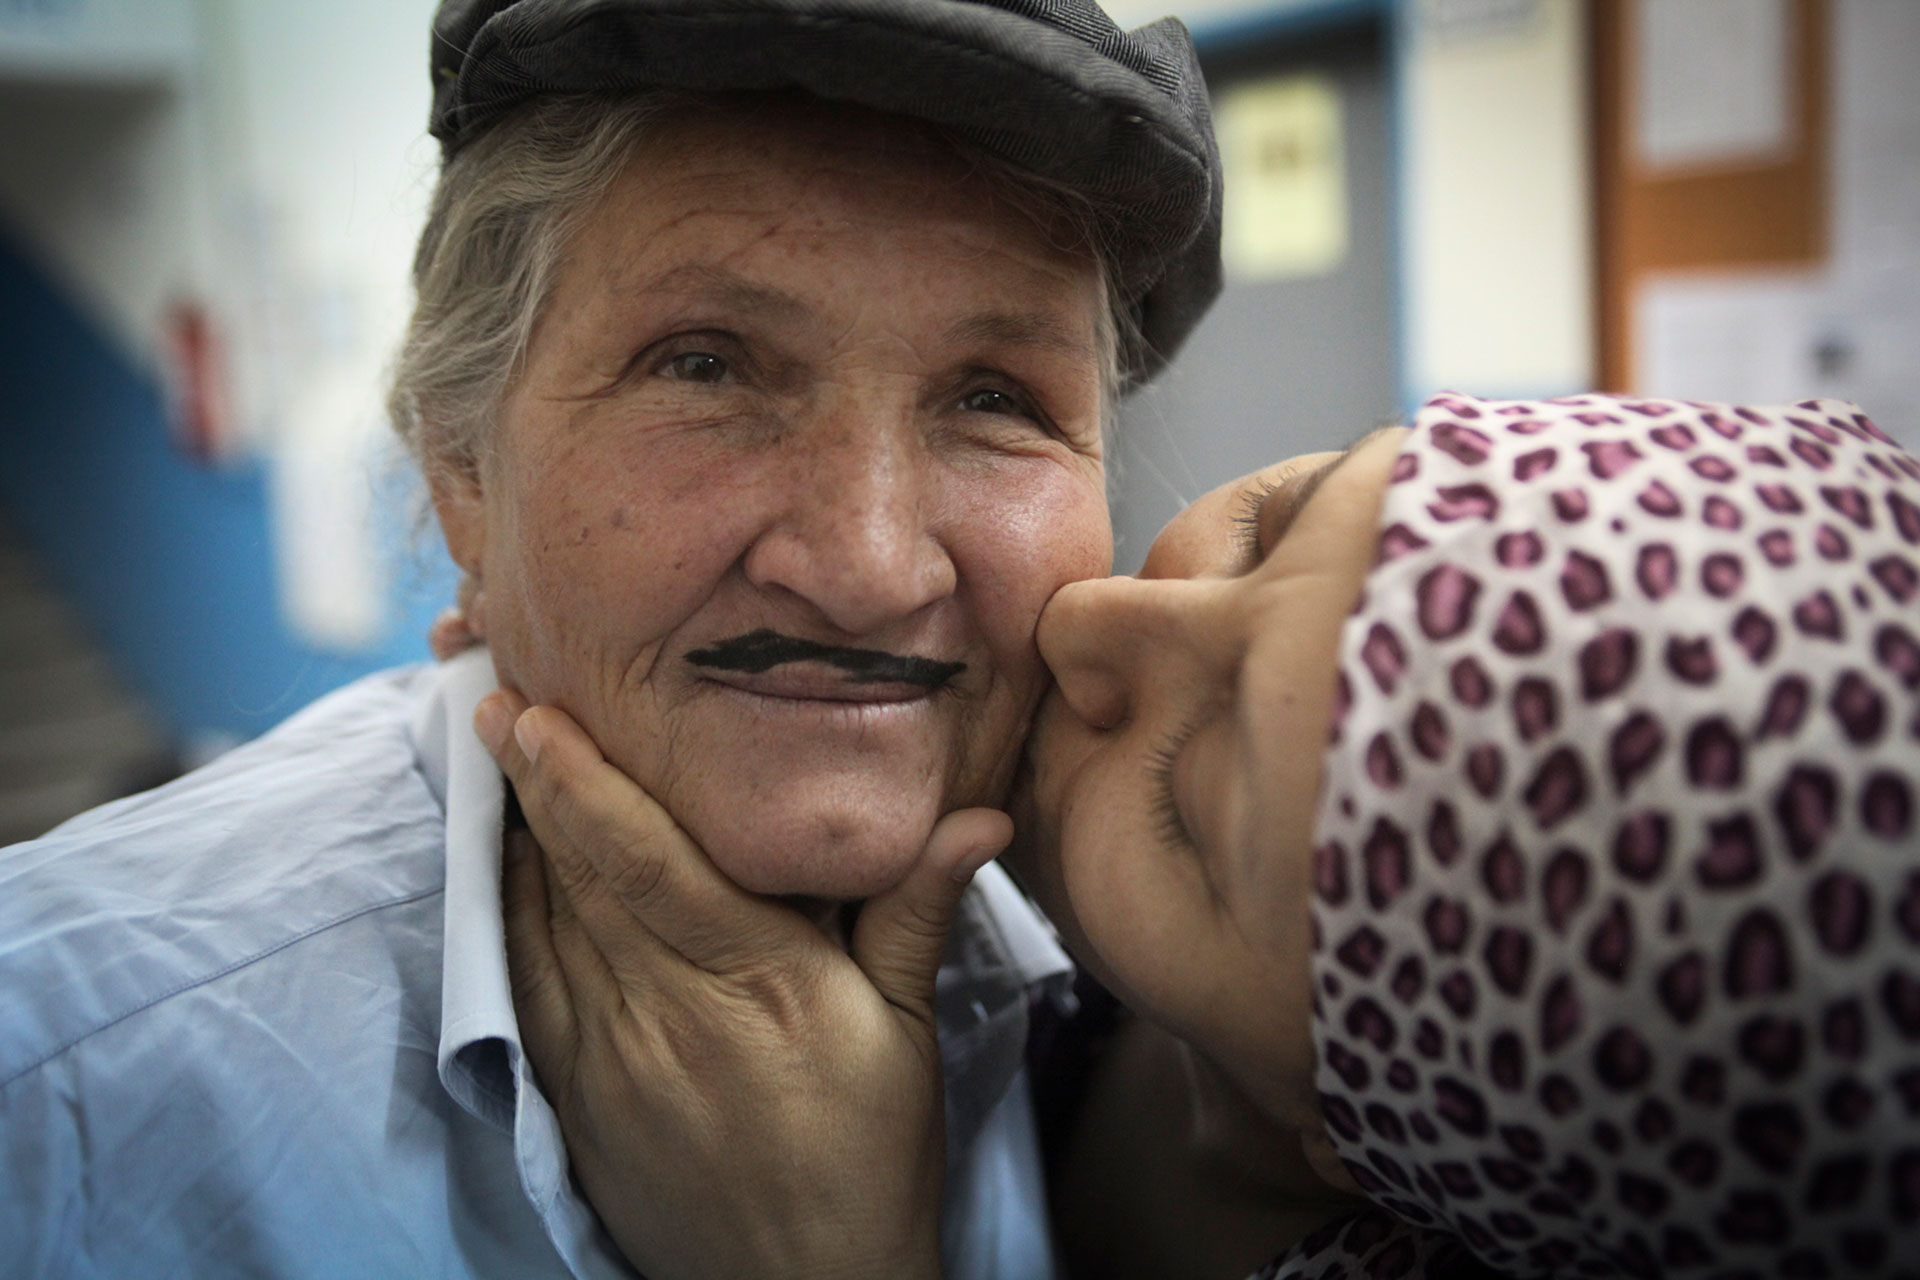 Cennet Sener, right, an actress in the Arslankoy Theater Group, playfully kisses another member of their troupe before their show, in a small village outside of Adana, southern Turkey.